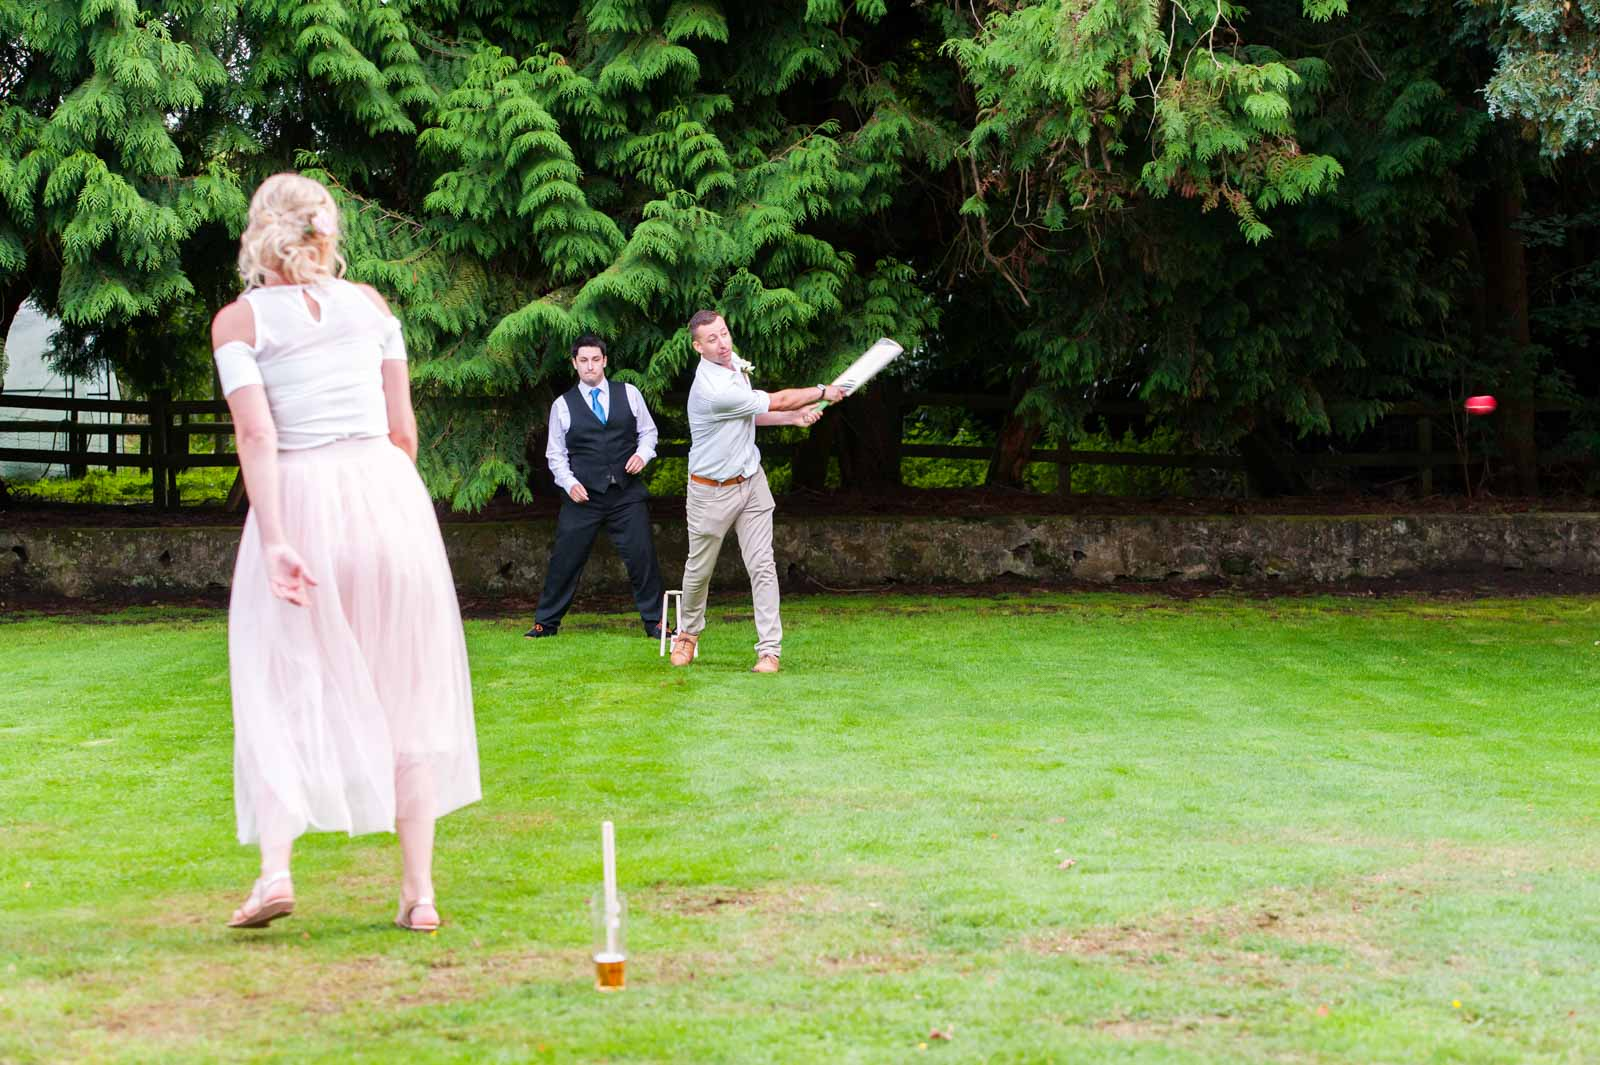 Wedding guests playing cricket